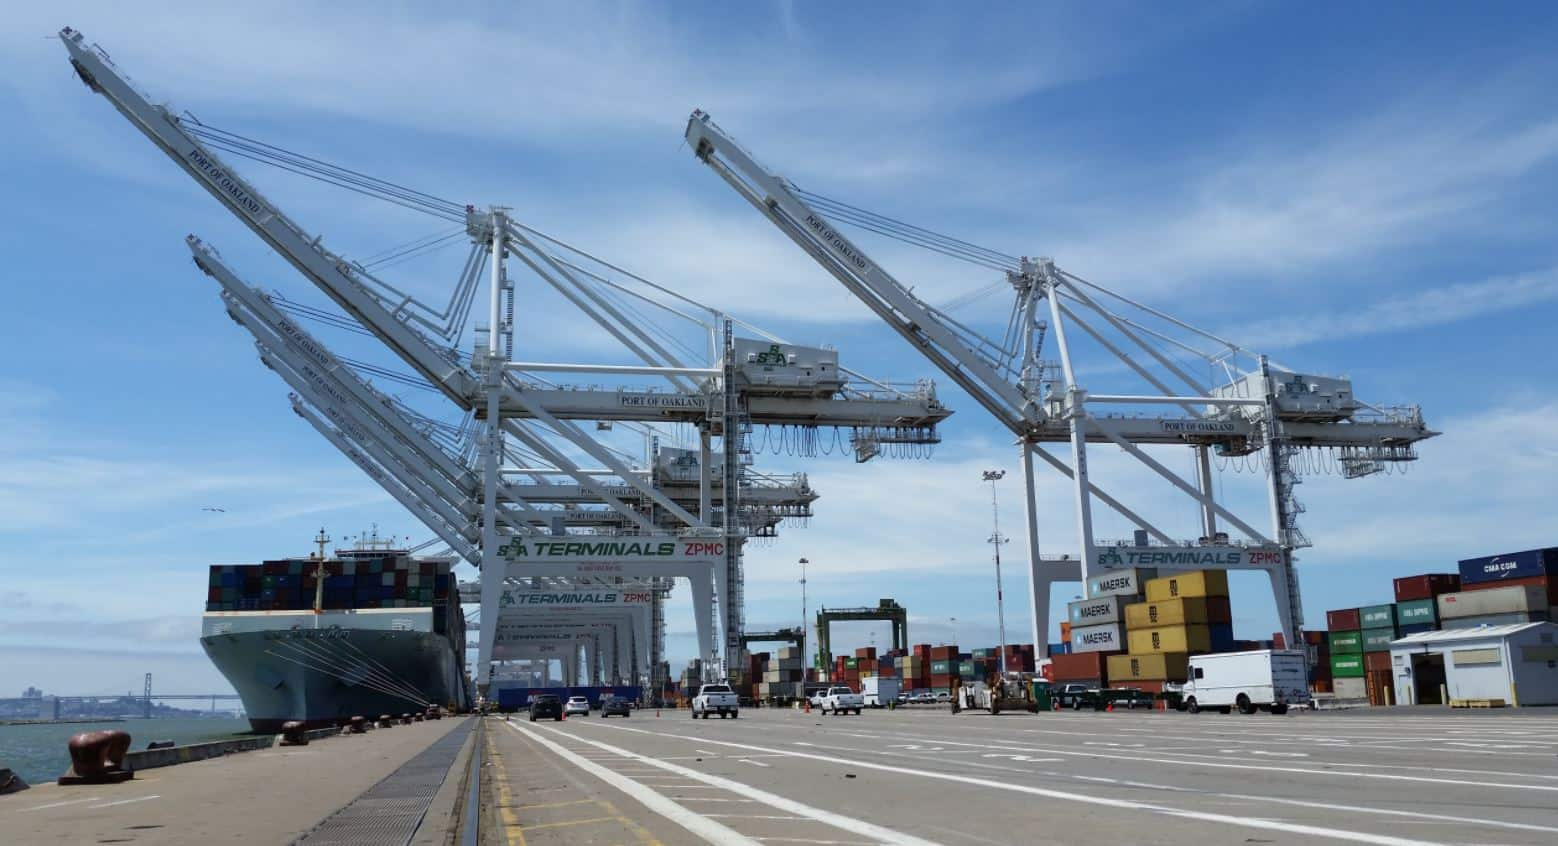 Four STS cranes to be heightened in Oakland